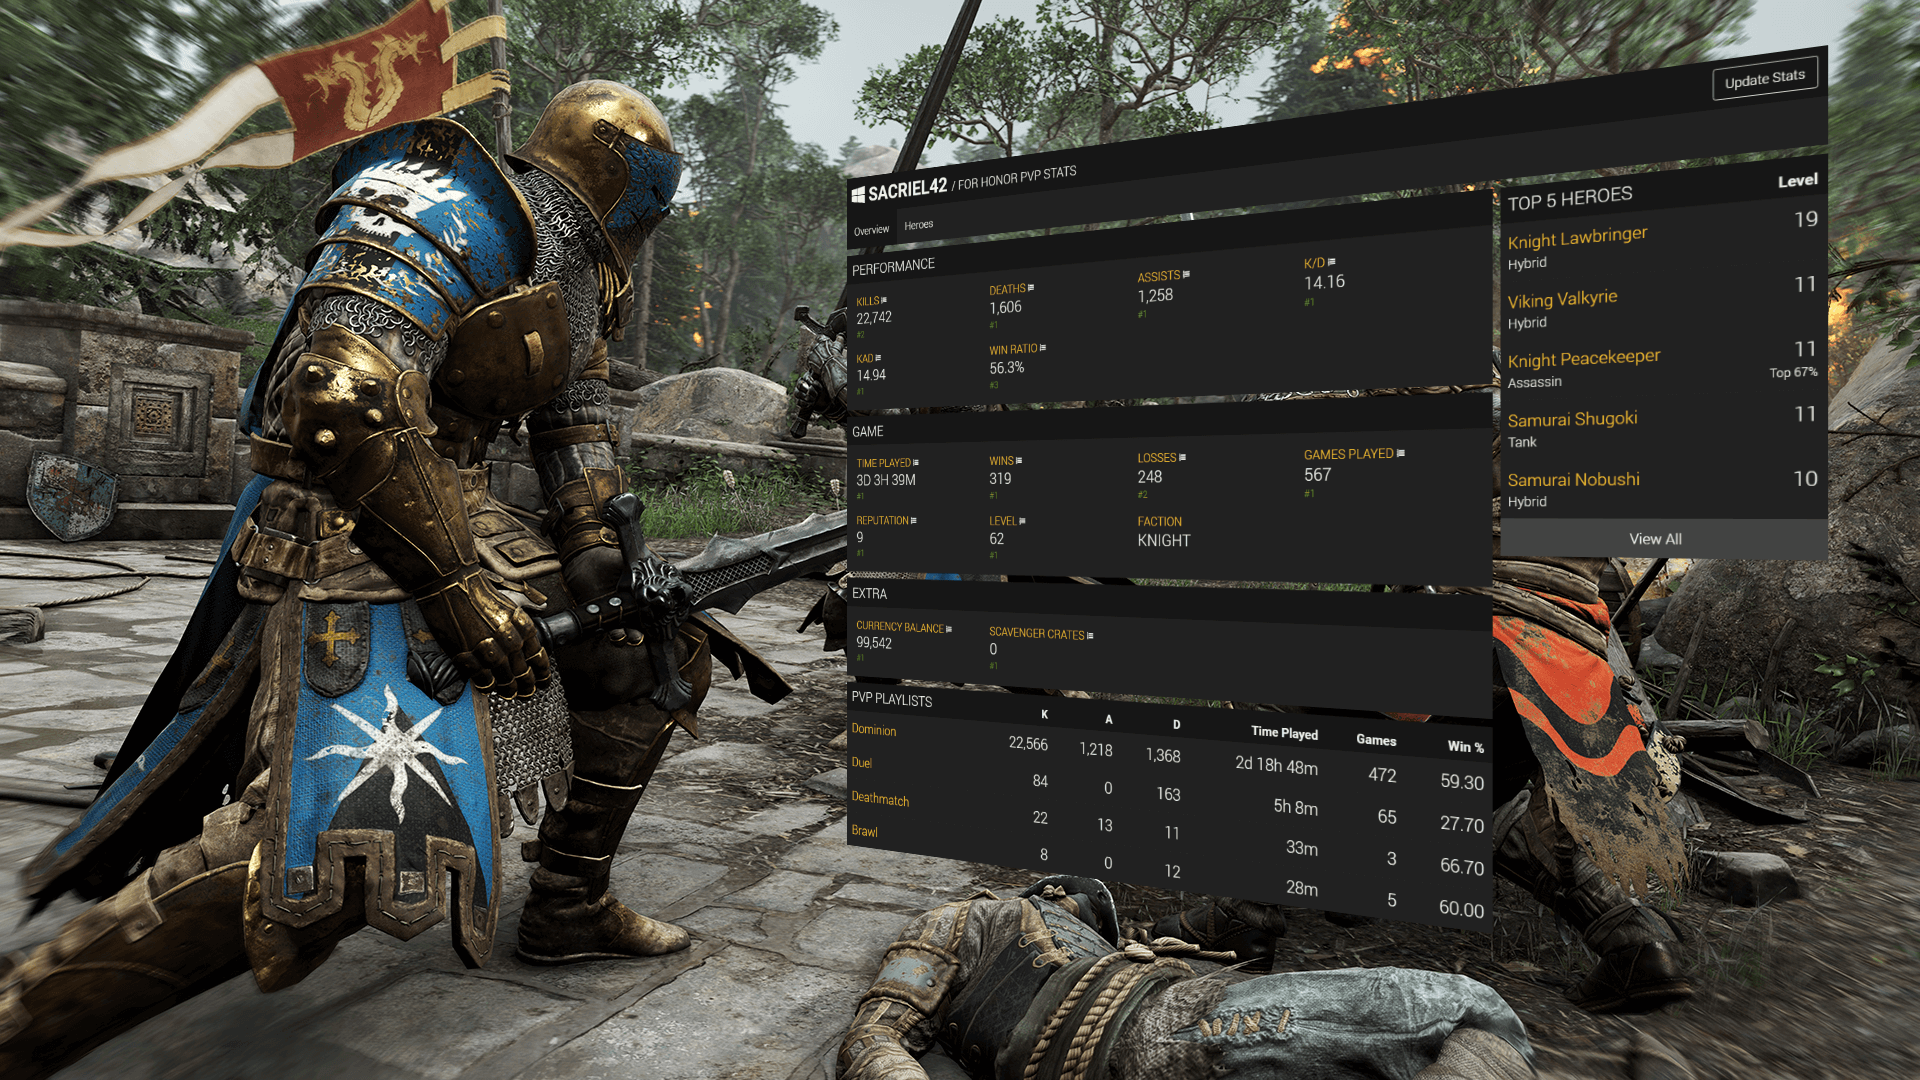 Tracker Network For Honor Stats & Leaderboards!